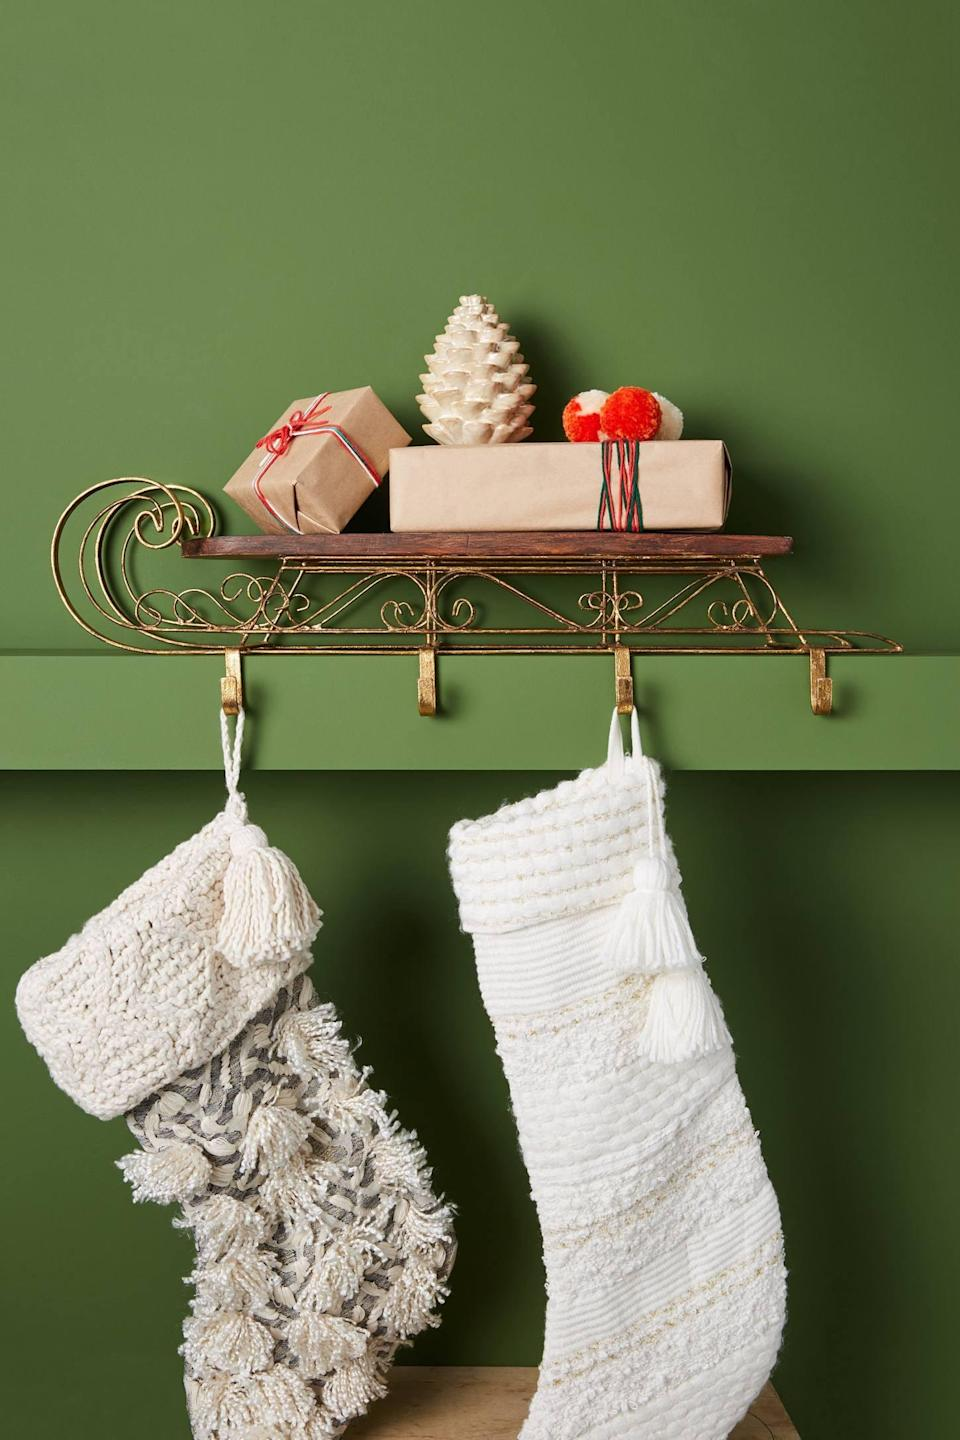 """<p>Display your stockings on this old world-looking <a href=""""https://www.popsugar.com/buy/Wooden-Sleigh-Stocking-Holder-490470?p_name=Wooden%20Sleigh%20Stocking%20Holder&retailer=anthropologie.com&pid=490470&price=158&evar1=casa%3Aus&evar9=46615300&evar98=https%3A%2F%2Fwww.popsugar.com%2Fhome%2Fphoto-gallery%2F46615300%2Fimage%2F46615340%2FWooden-Sleigh-Stocking-Holder&list1=shopping%2Canthropologie%2Choliday%2Cchristmas%2Cchristmas%20decorations%2Choliday%20decor%2Chome%20shopping&prop13=mobile&pdata=1"""" rel=""""nofollow noopener"""" class=""""link rapid-noclick-resp"""" target=""""_blank"""" data-ylk=""""slk:Wooden Sleigh Stocking Holder"""">Wooden Sleigh Stocking Holder</a> ($158).</p>"""